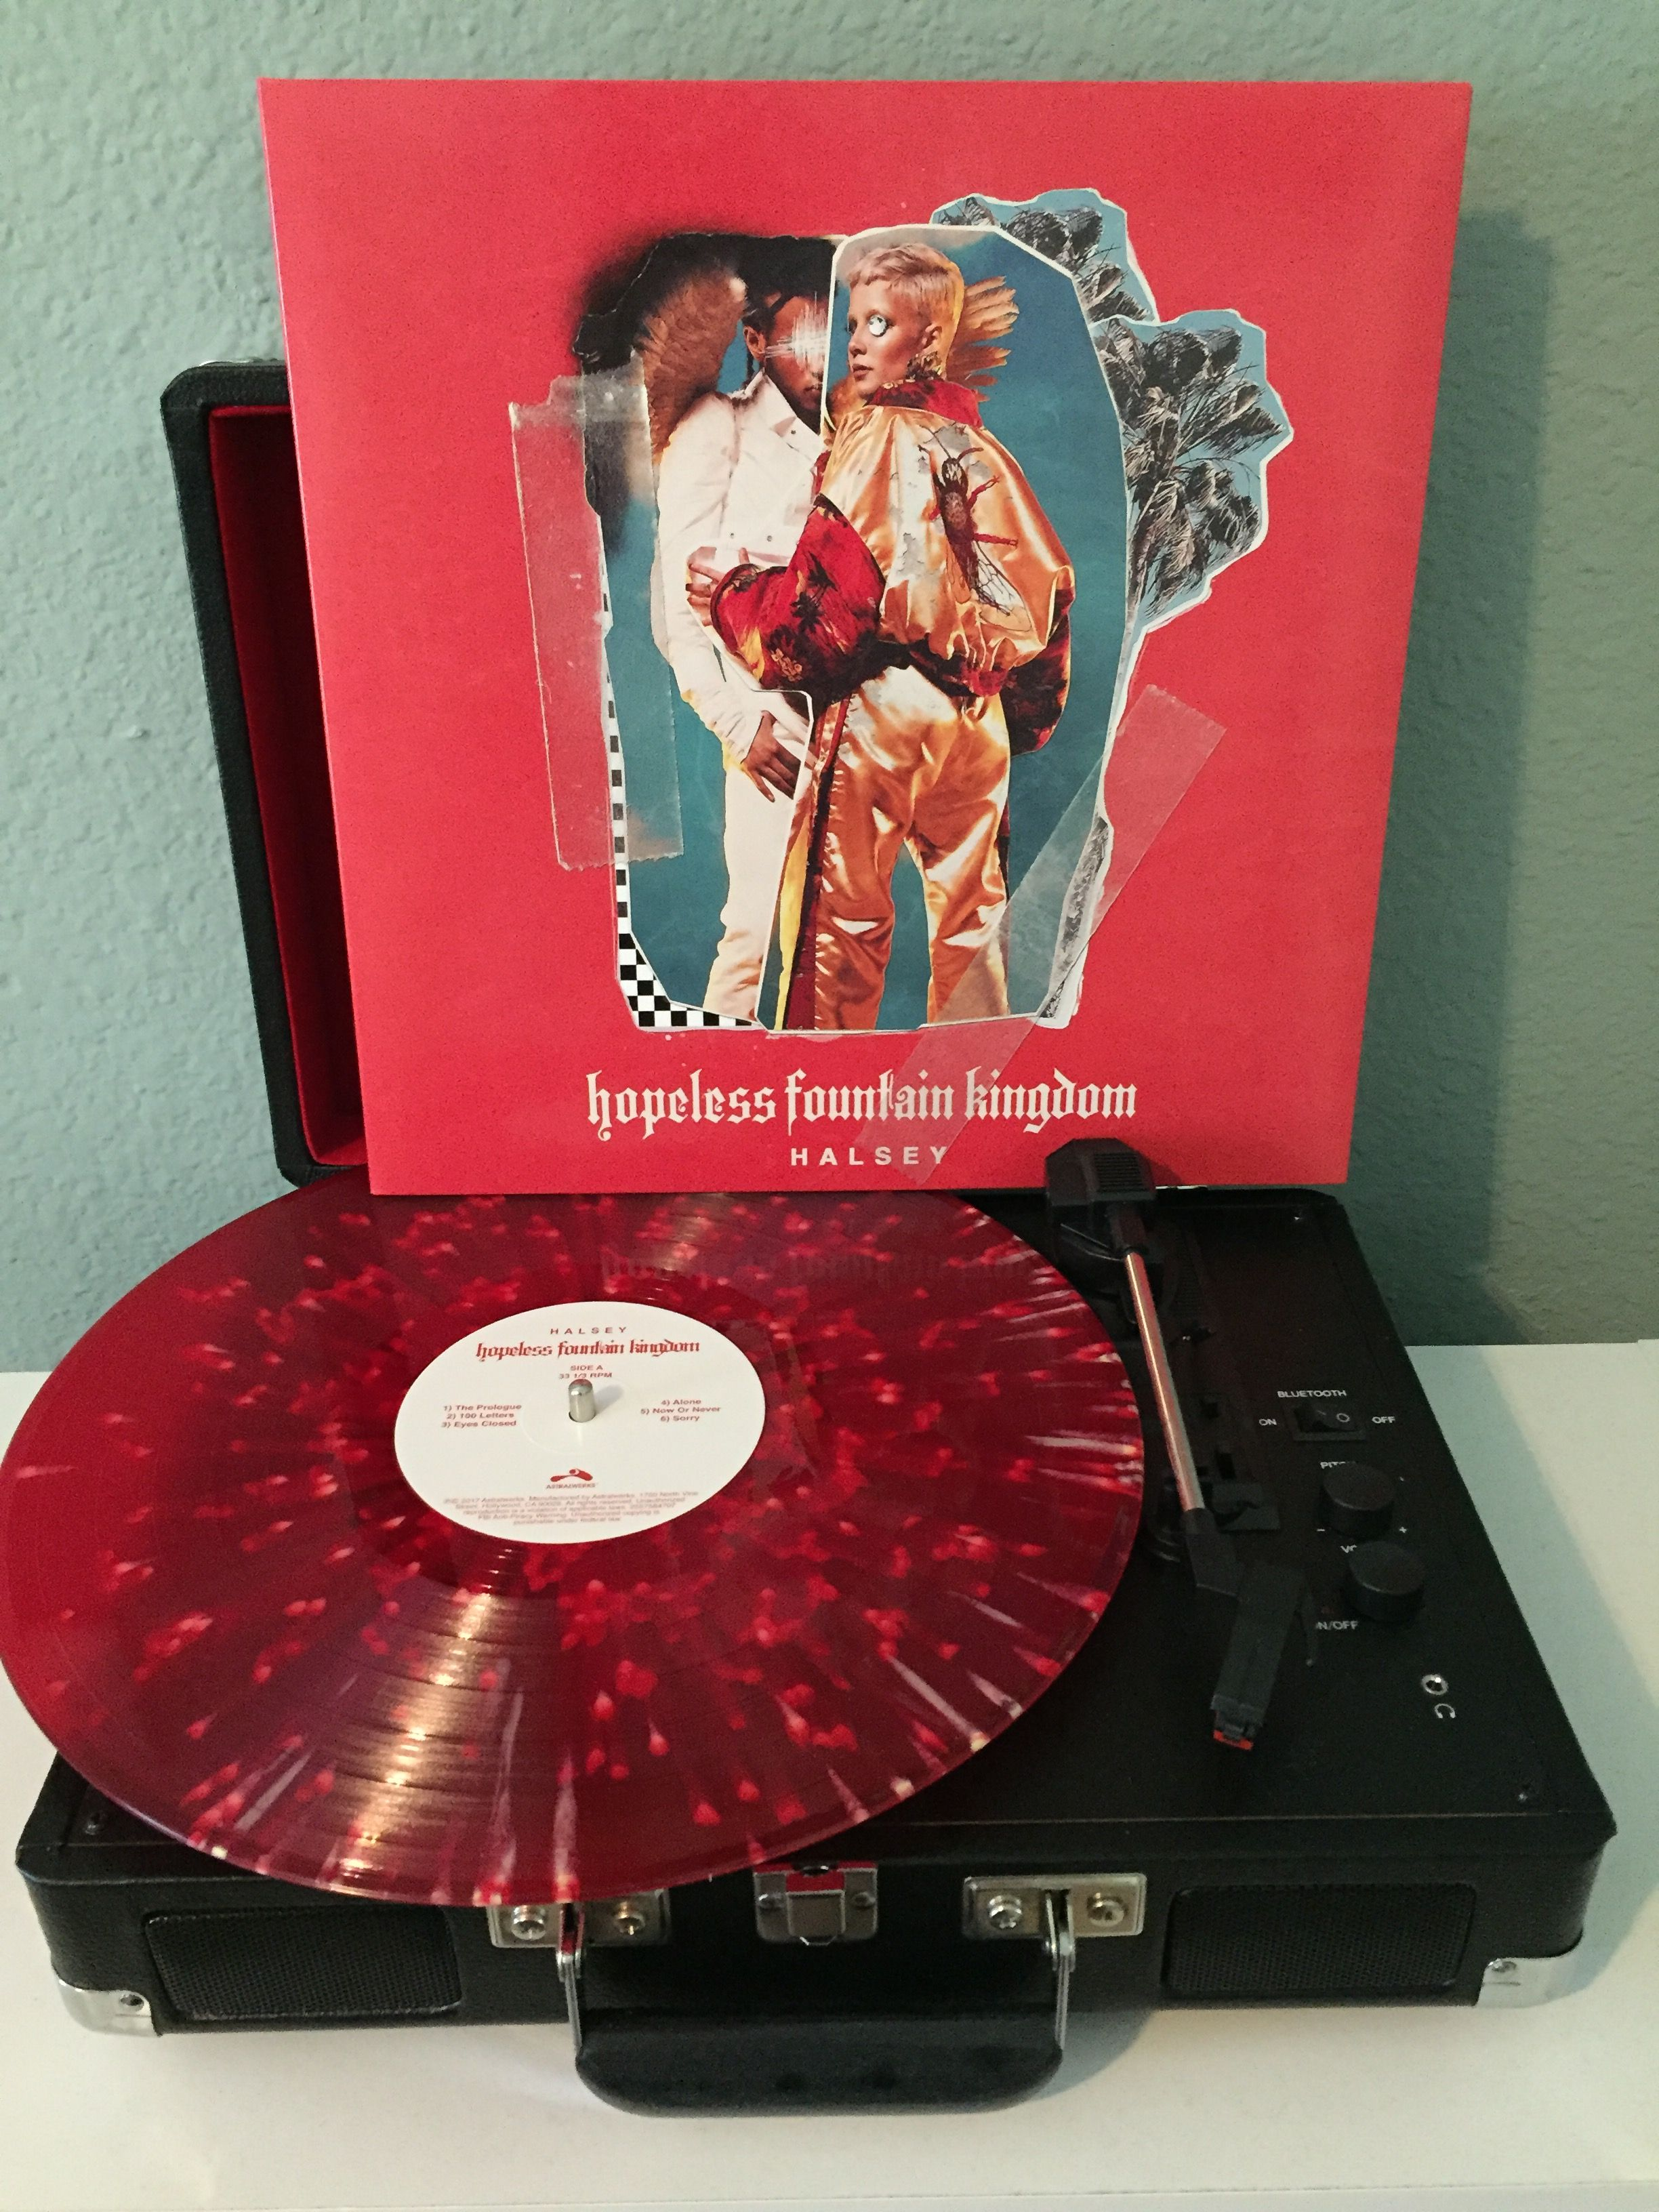 Halsey Hopeless Fountain Kingdom Indie Record Store Exclusive Pressing Photo By Saturnbaby666 Hopeless Fountain Kingdom Vinyl Music Vintage Records